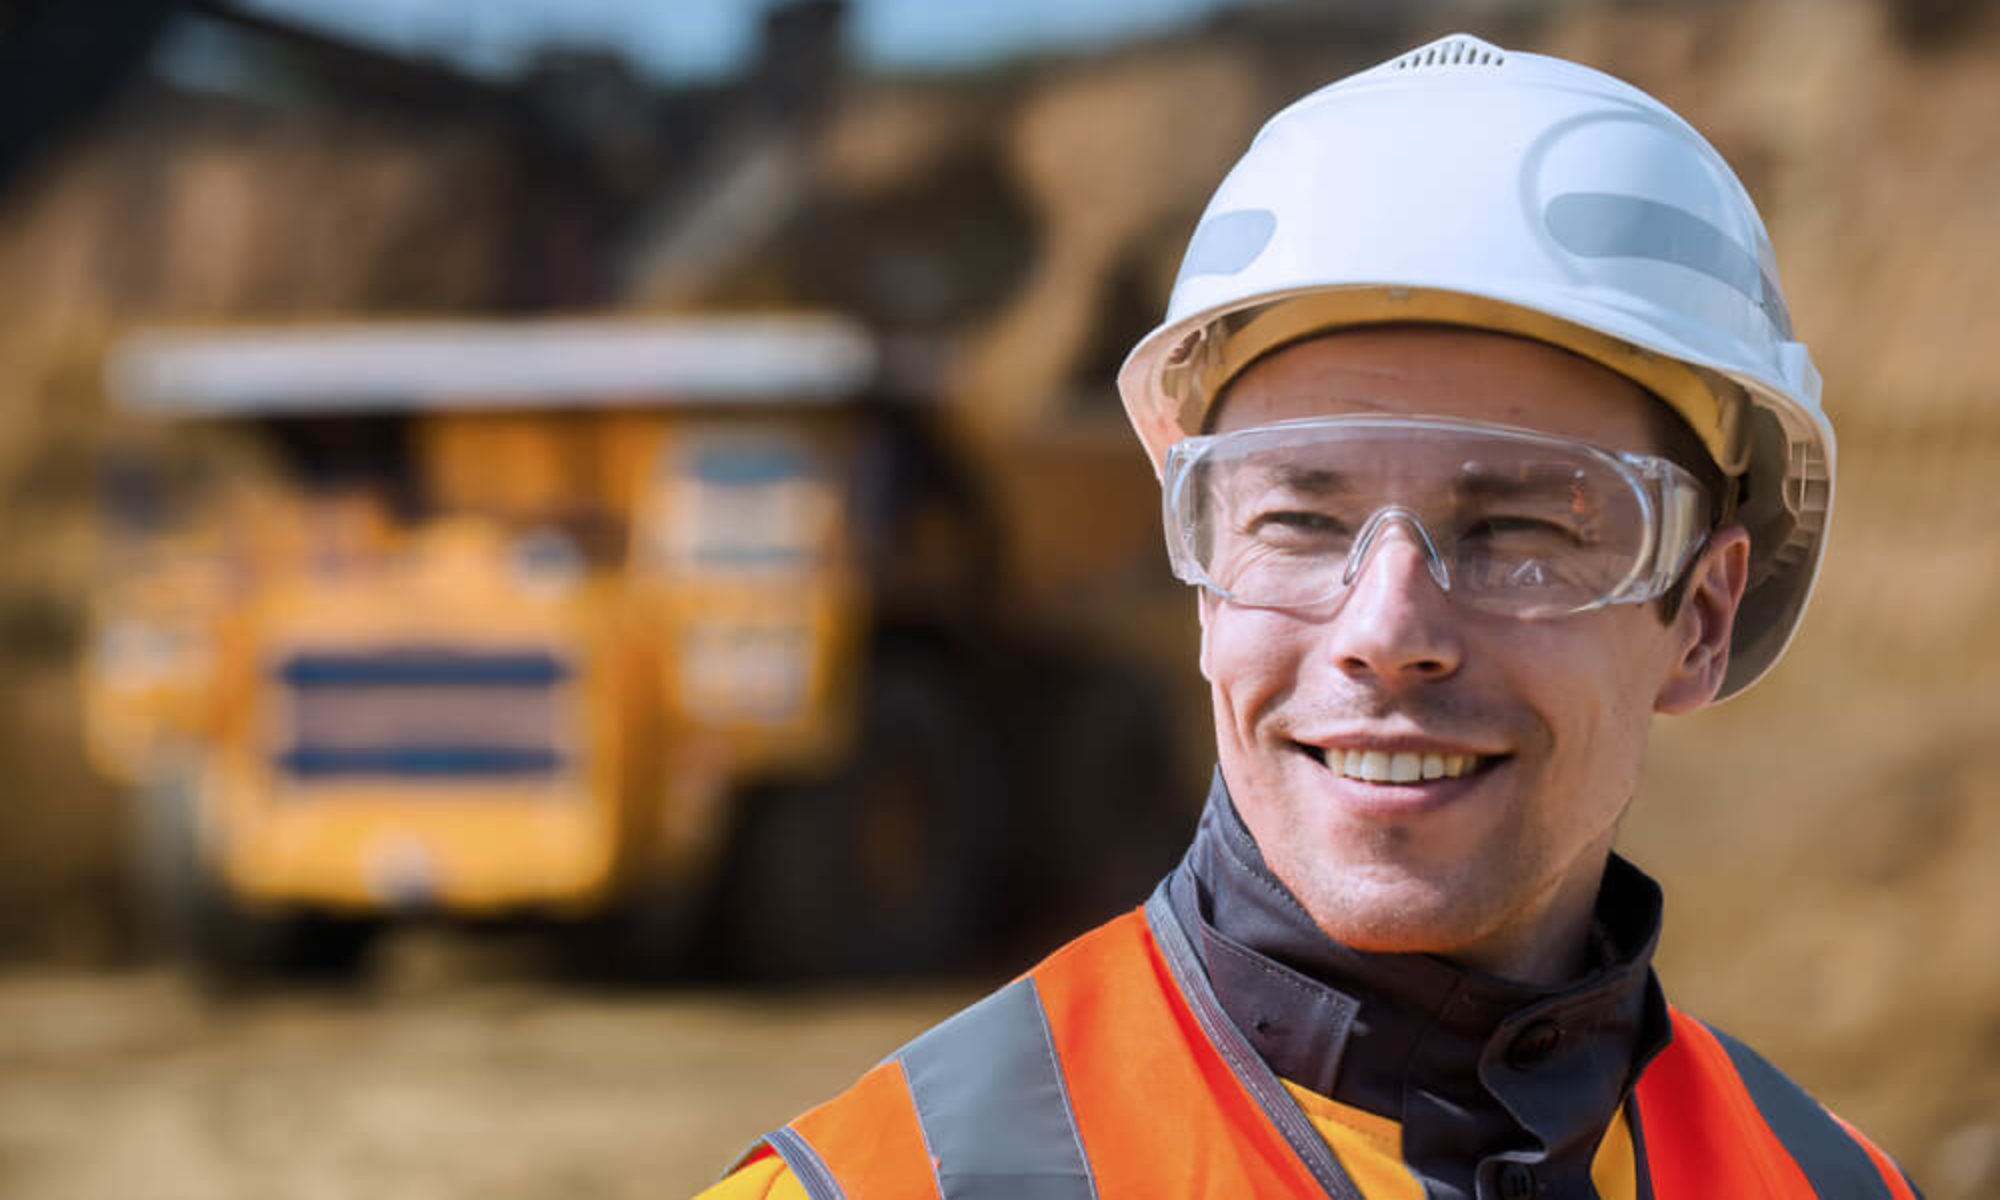 Construction site worker smiling